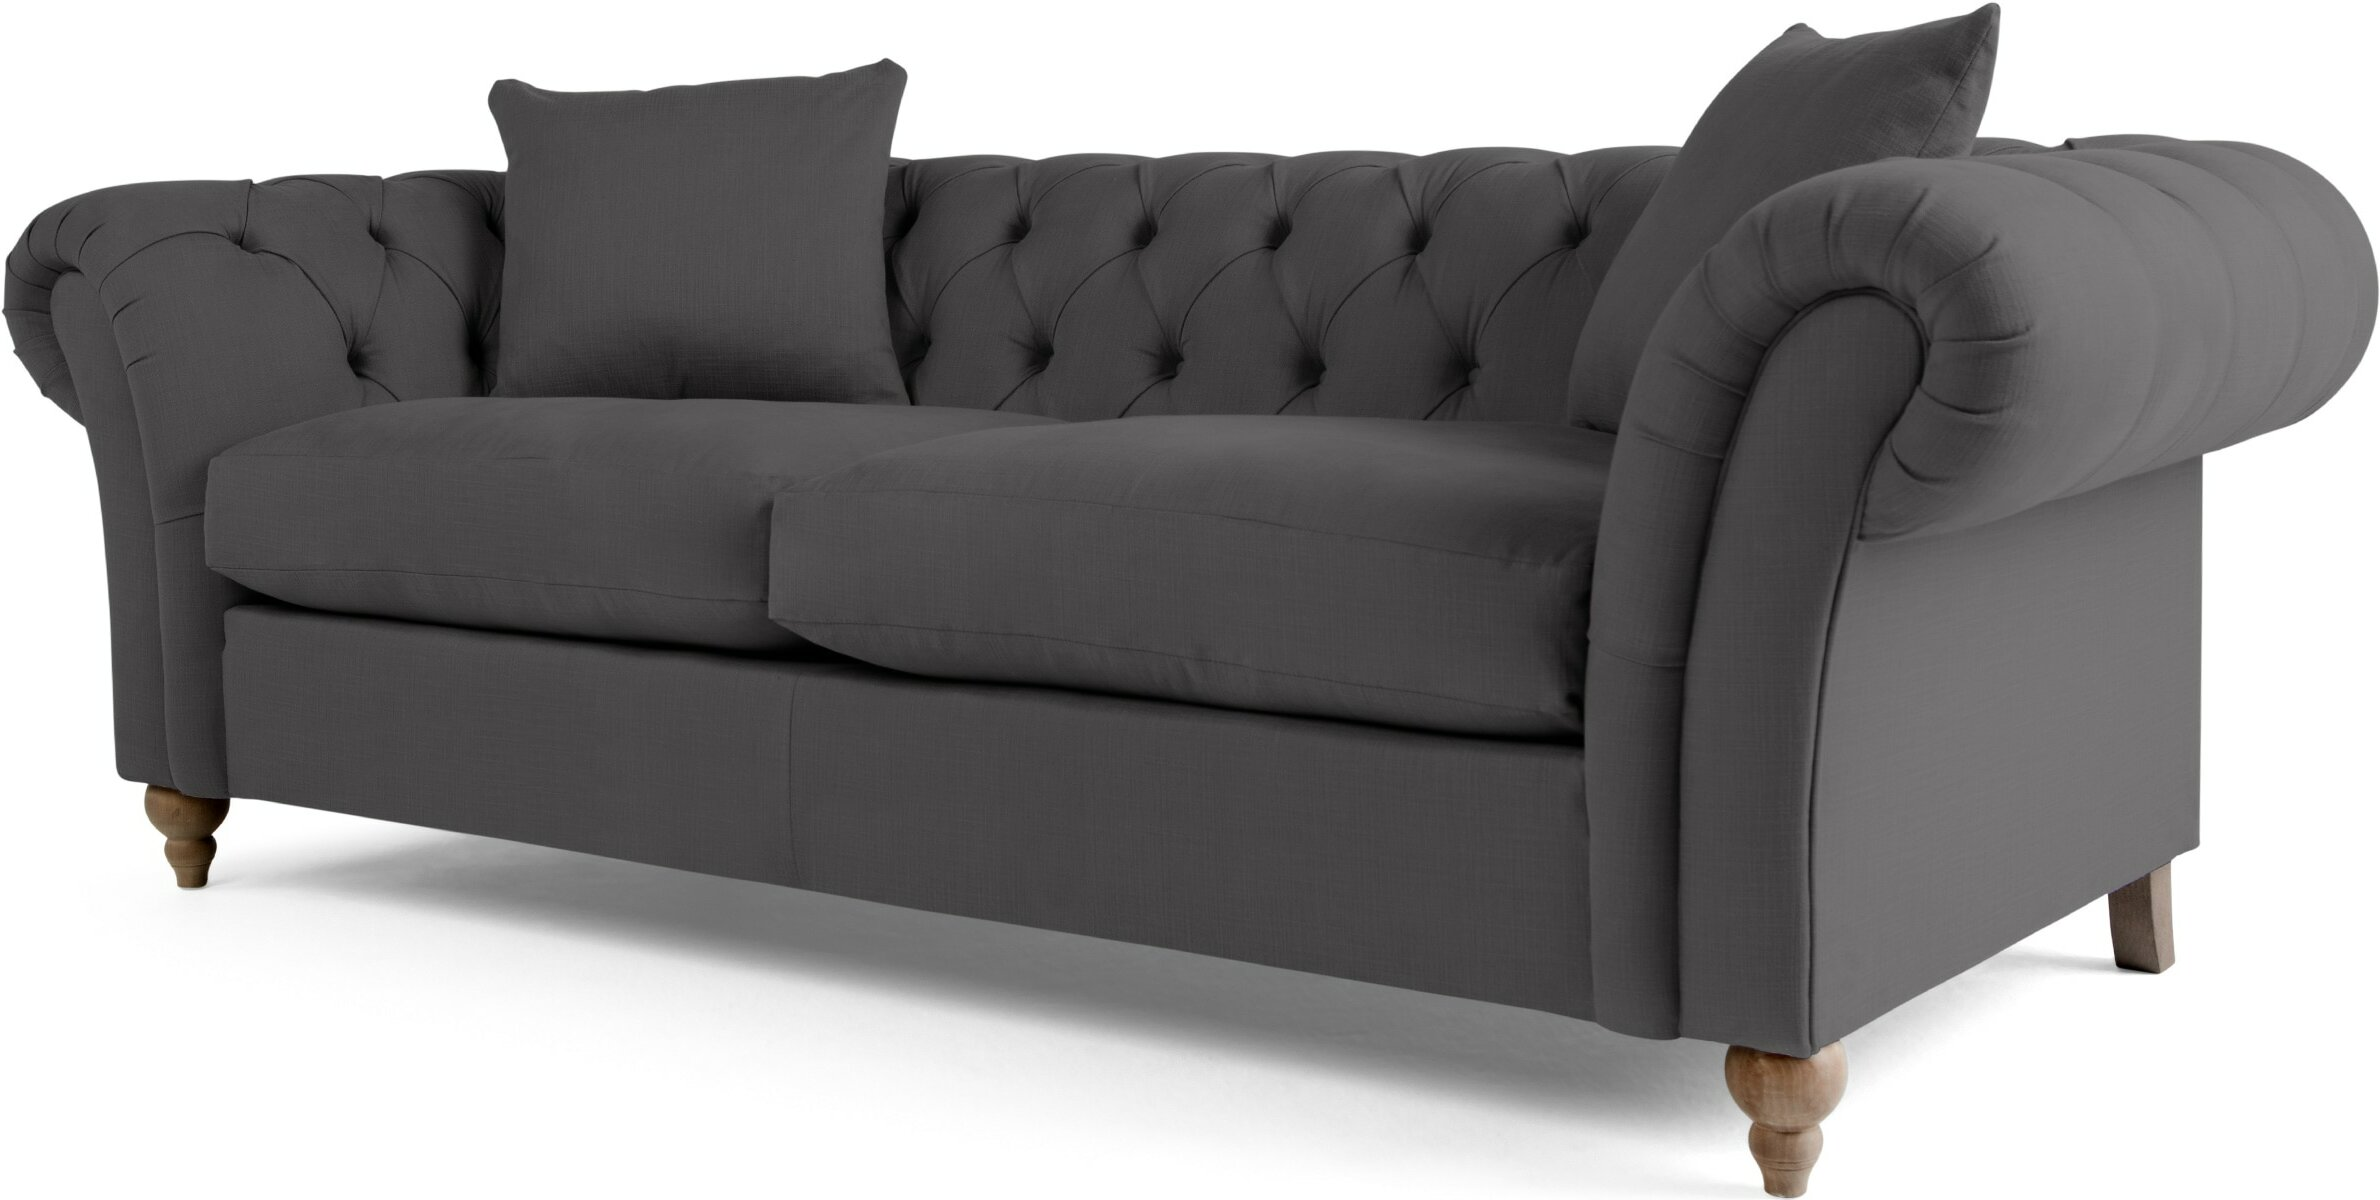 Buy A Chesterfield Sofa Buy Cheap Chesterfield Sofa Compare Sofas Prices For